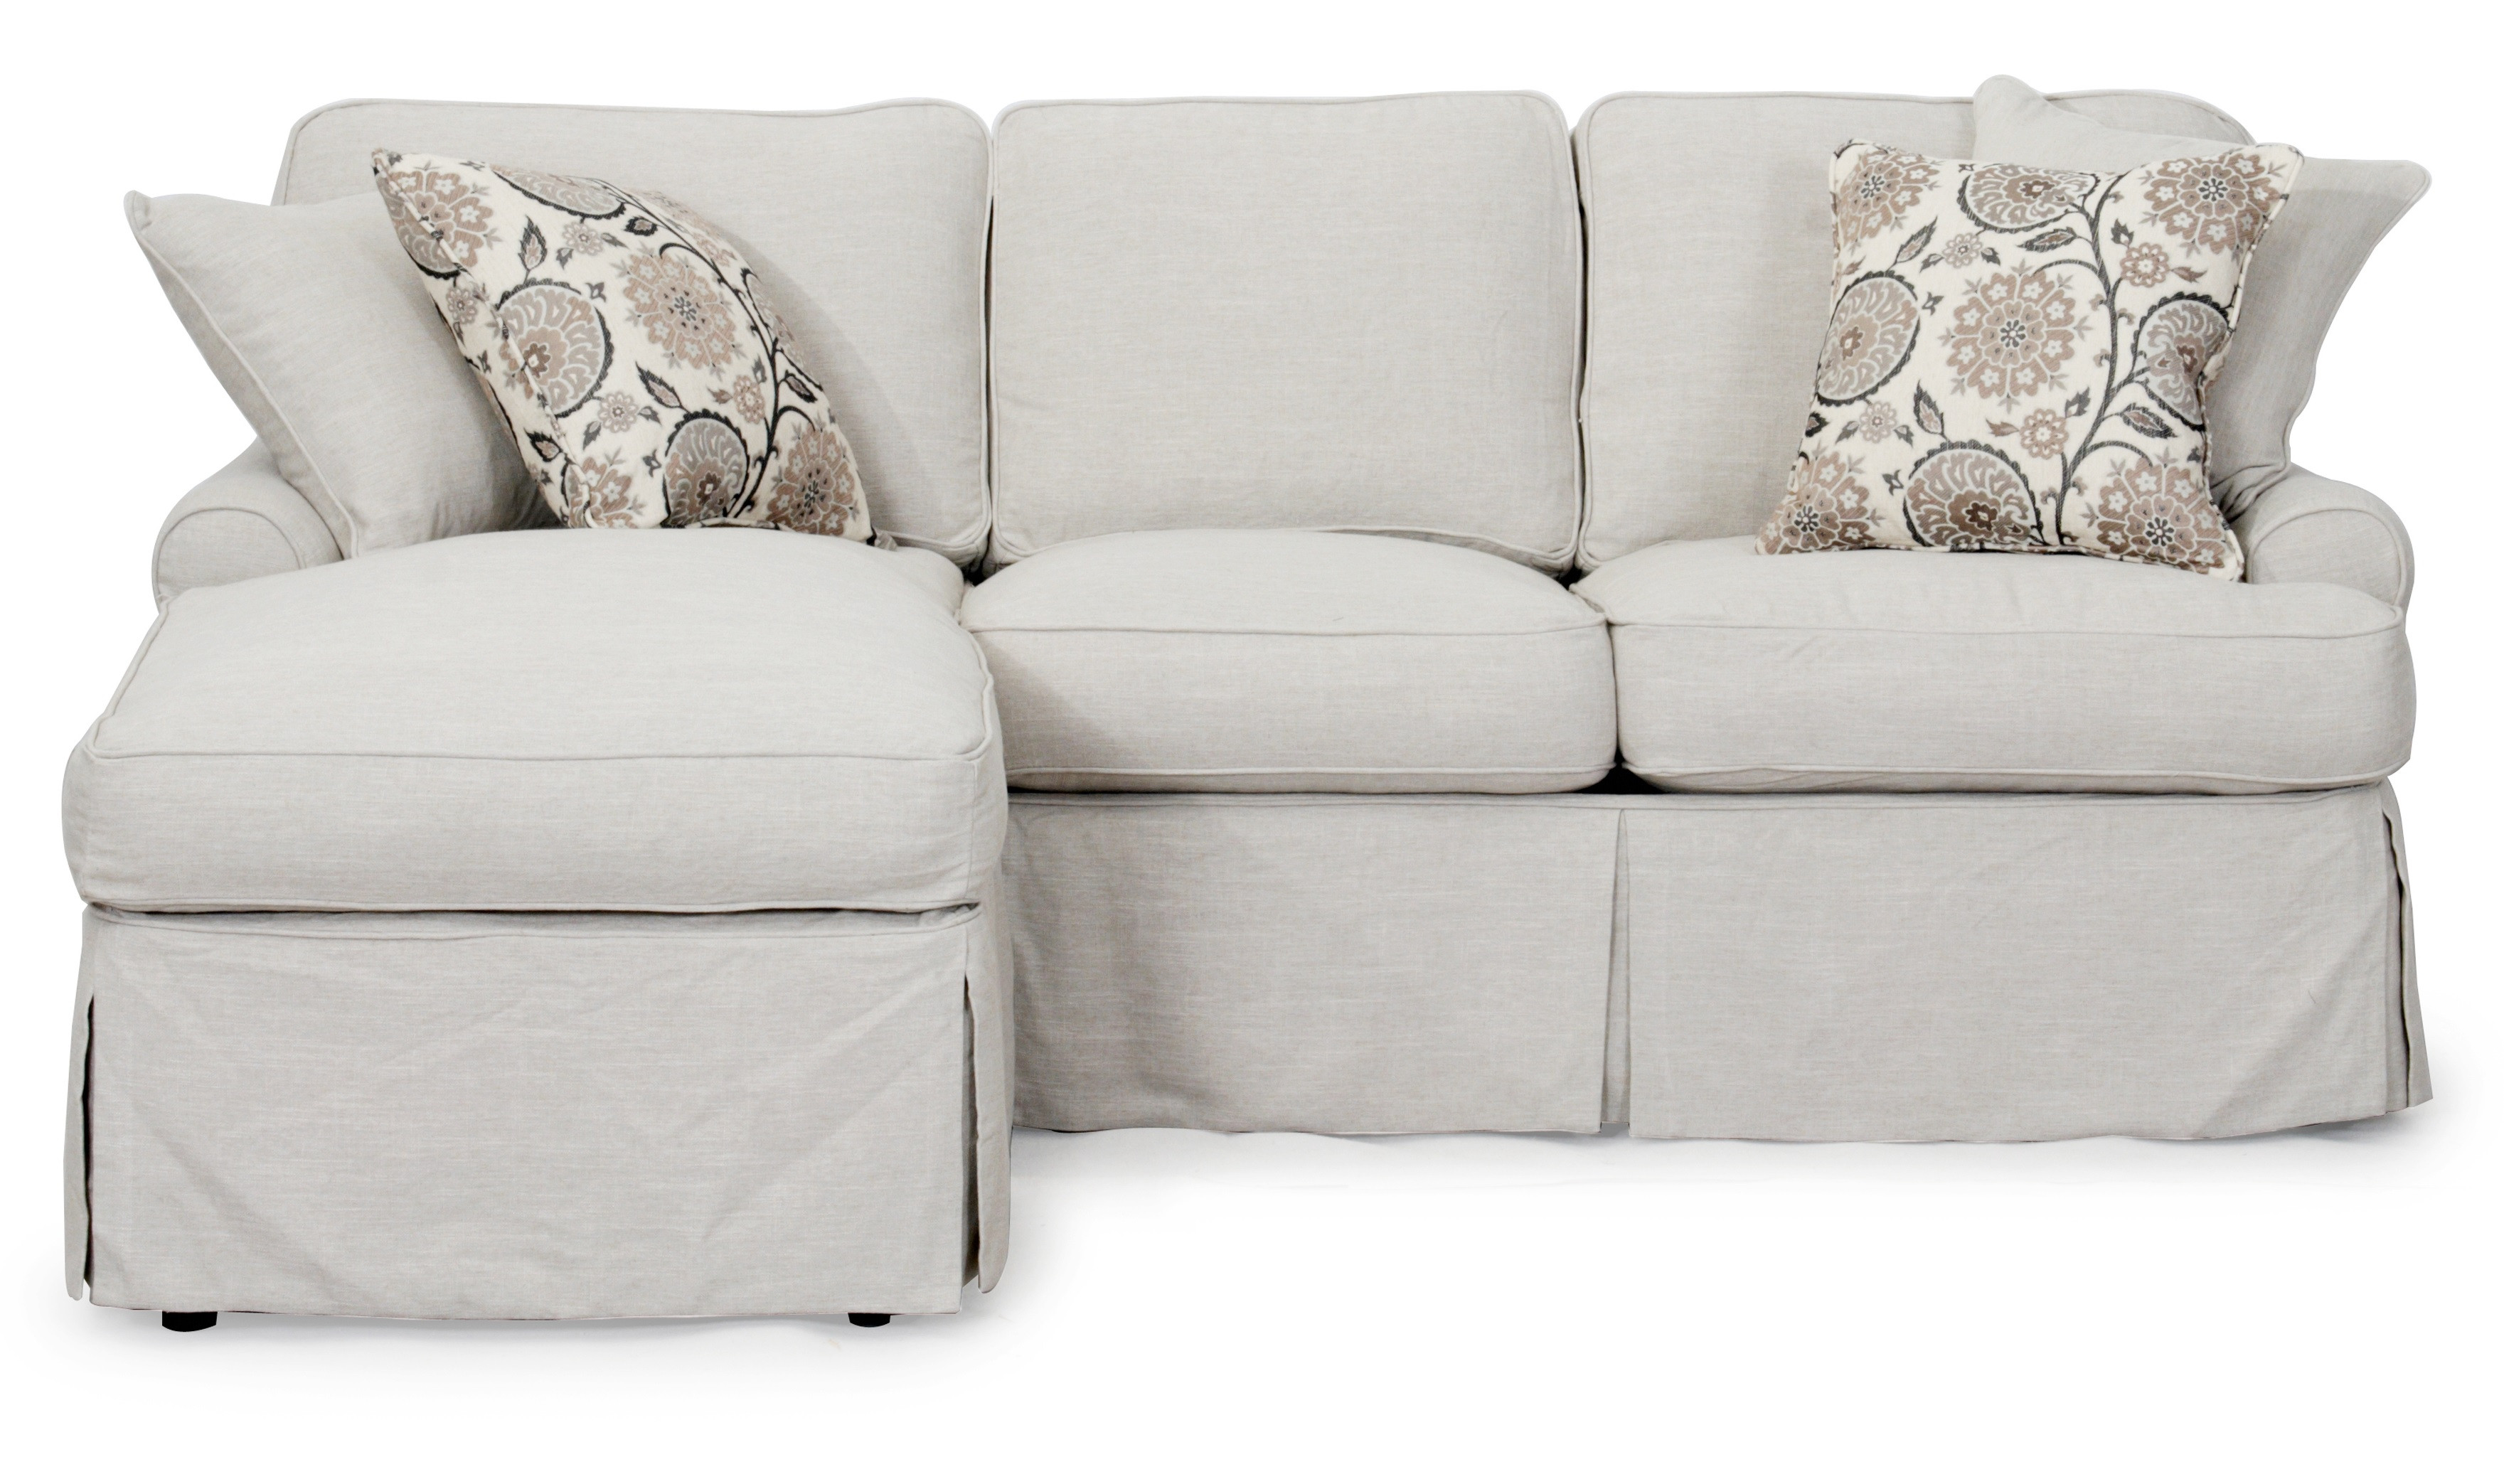 Best ideas about Light Gray Sofa . Save or Pin Sunset Trading Horizon Slipcovered Sleeper Sofa and Chaise Now.